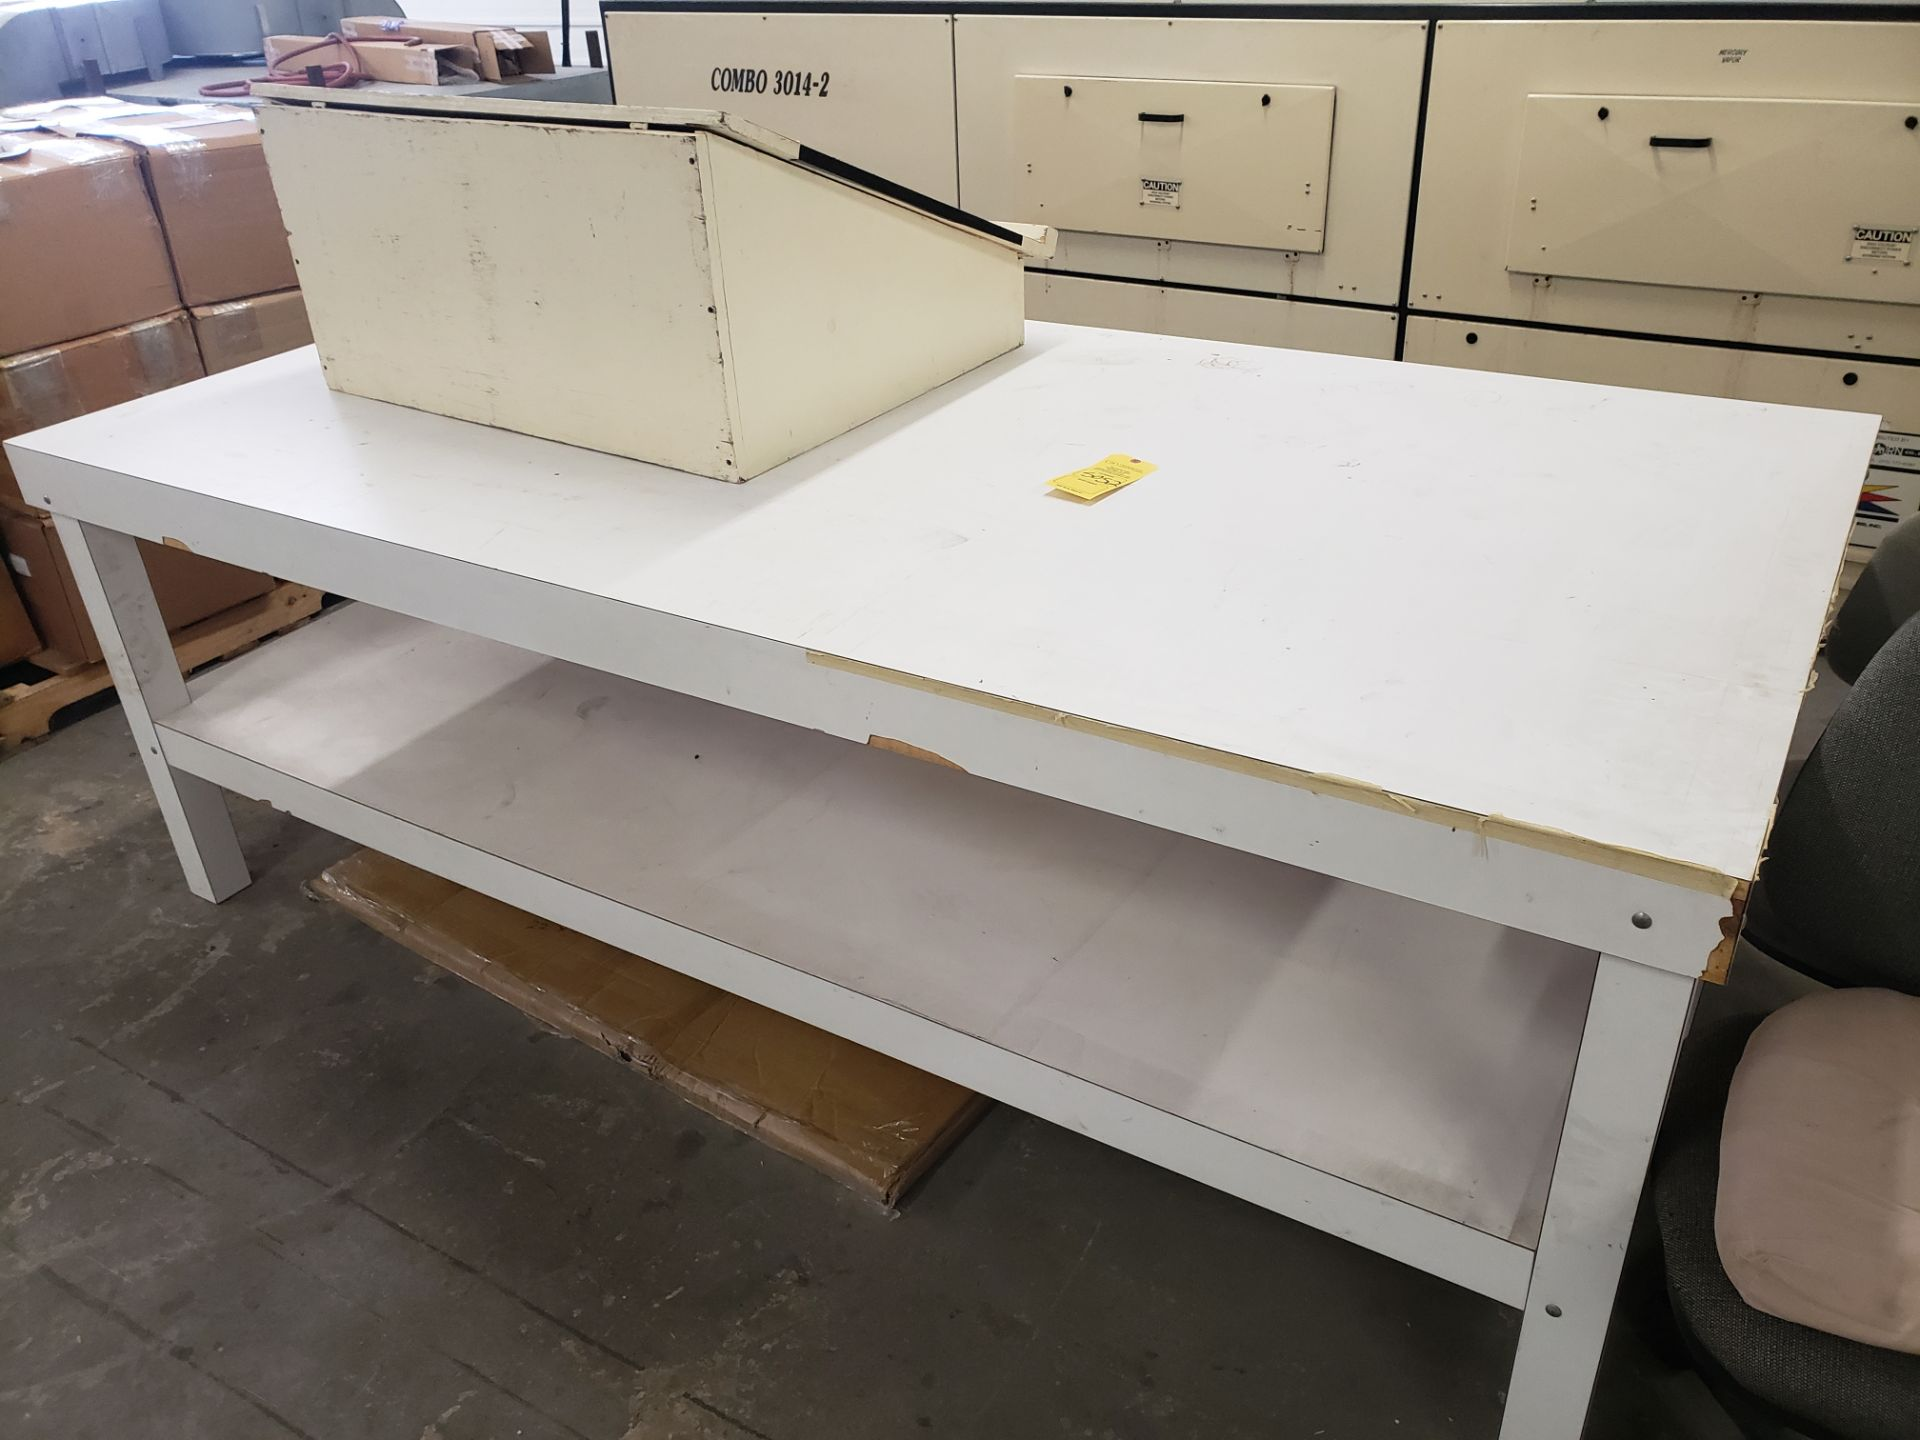 Lot 5052 - PODIUM TABLE (LOCATED AT: 16335 LIMA ROAD BLDG. 4 HUNTERTOWN, IN 46748)